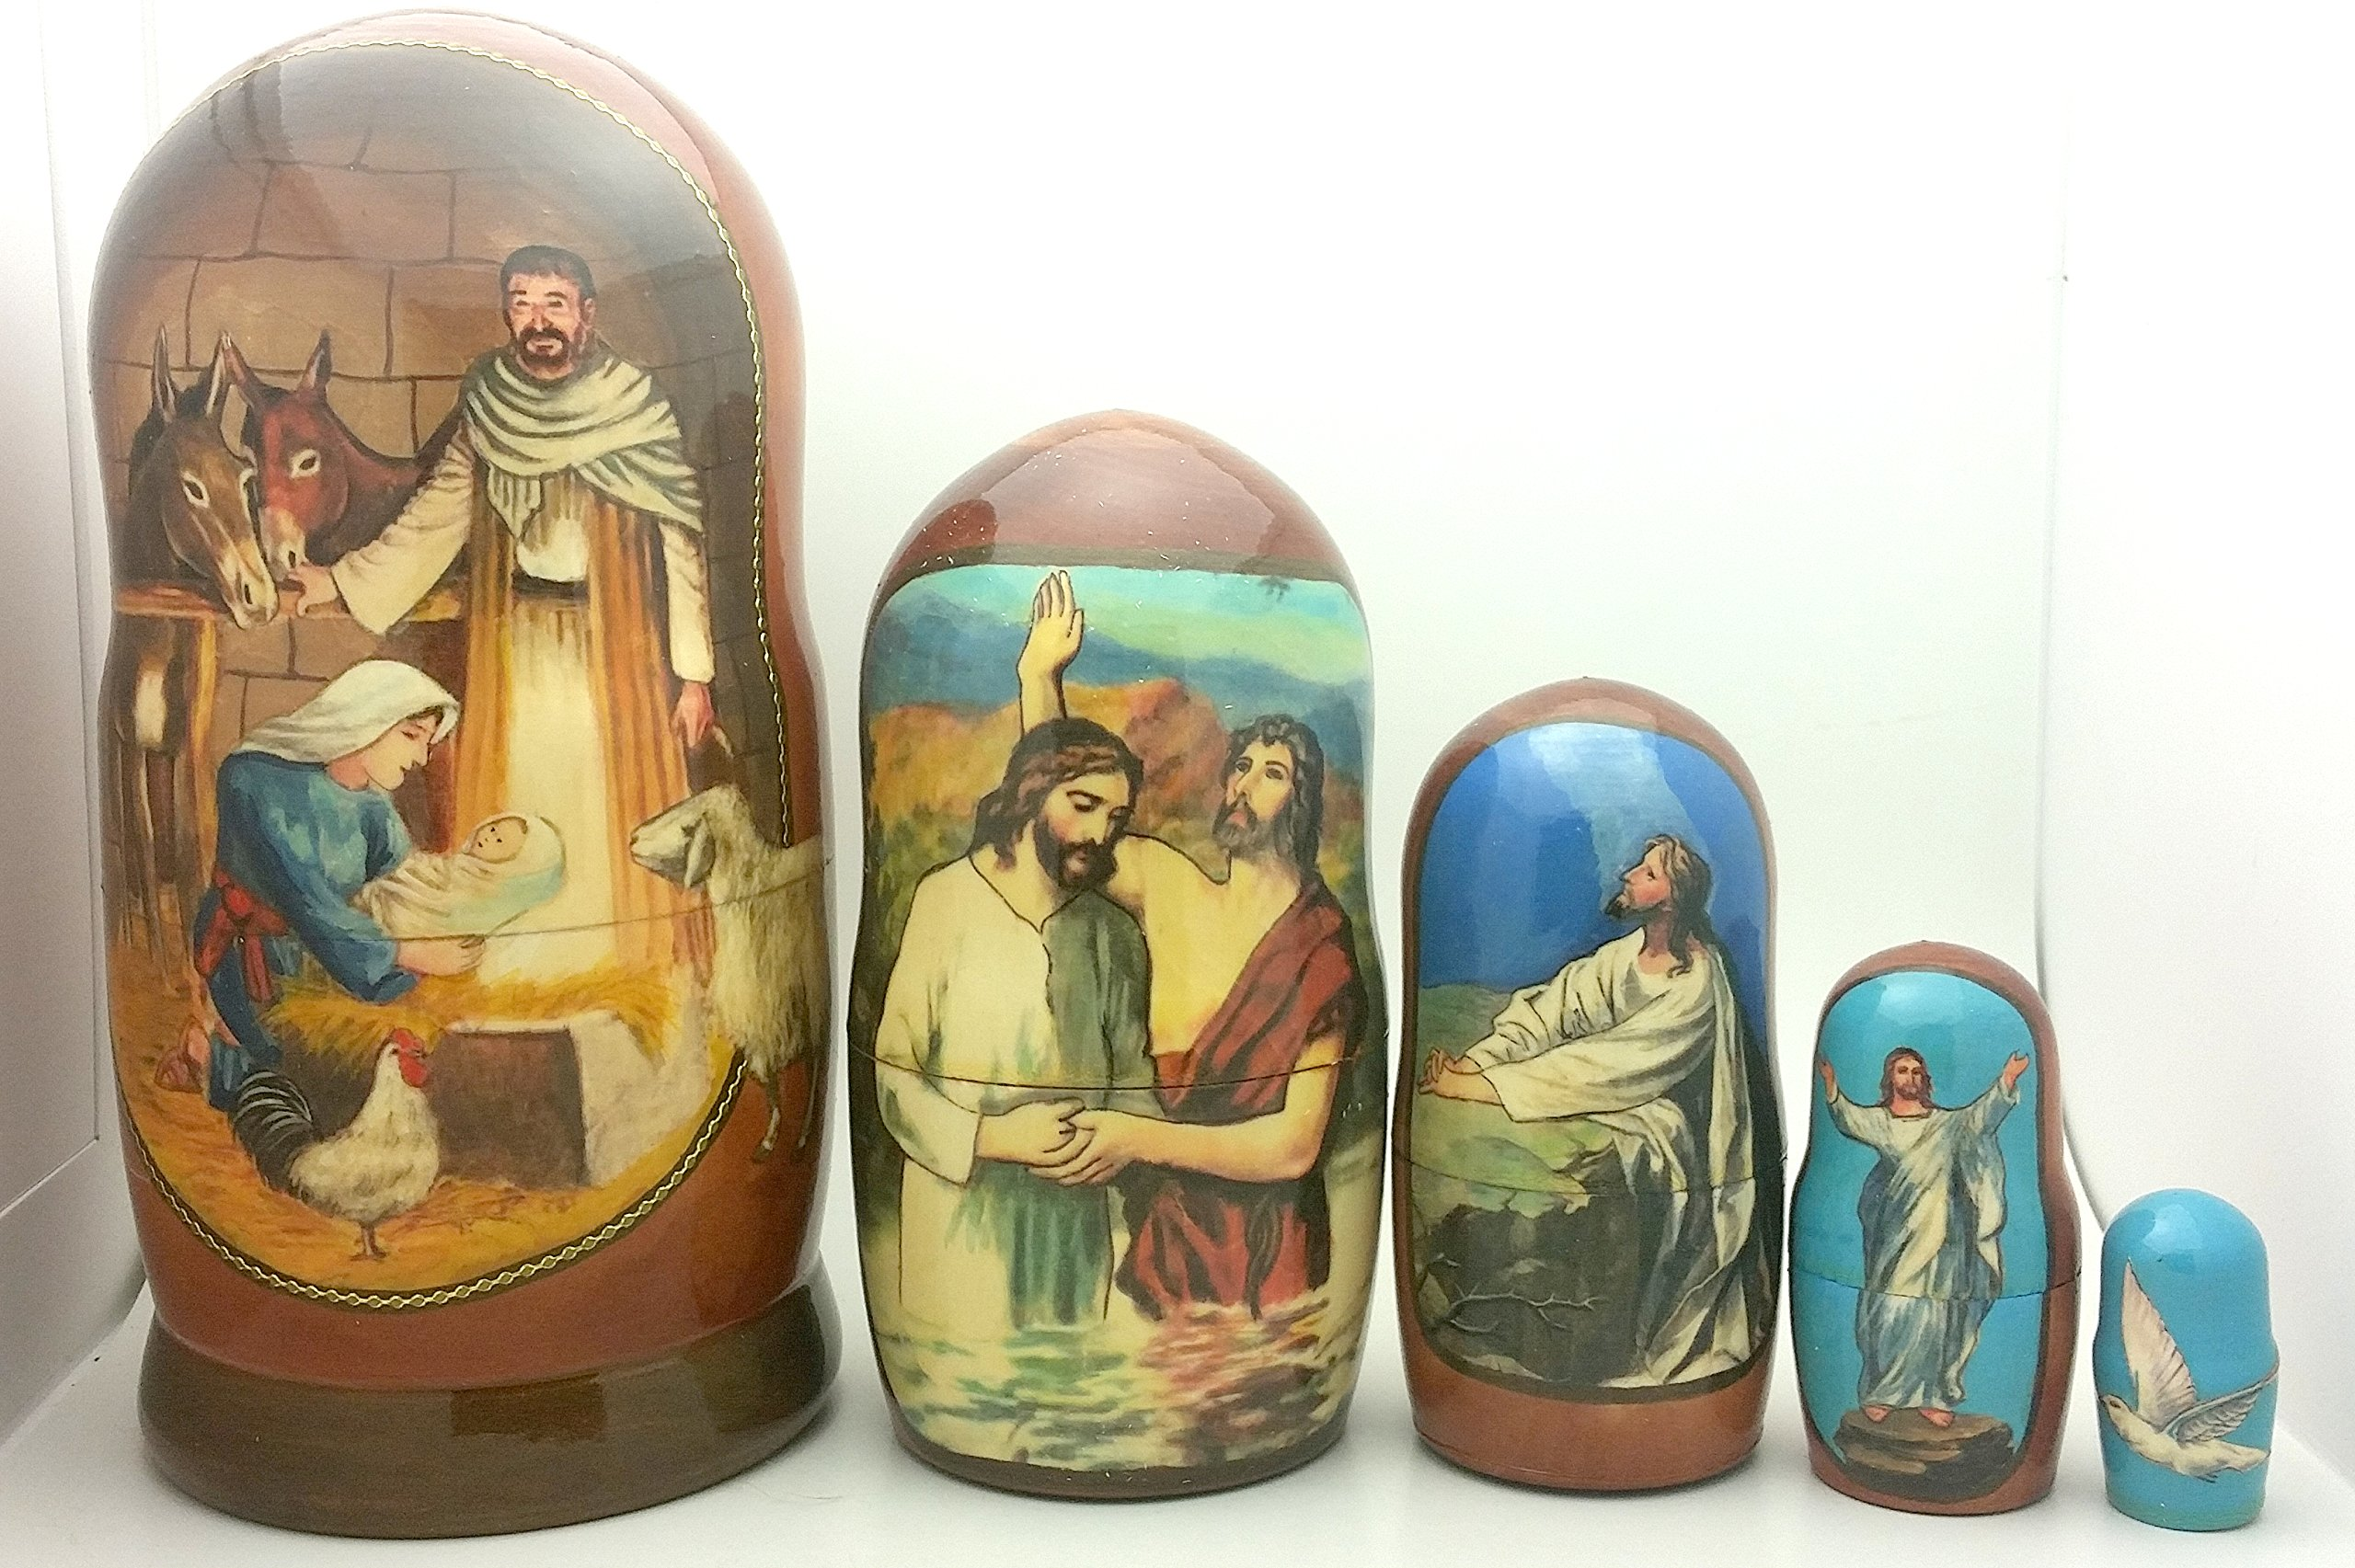 Nativity Jesus Life Nesting Doll Hand Made in Russia 5 Piece 7''H Christmas Set by BuyRussianGifts (Image #2)